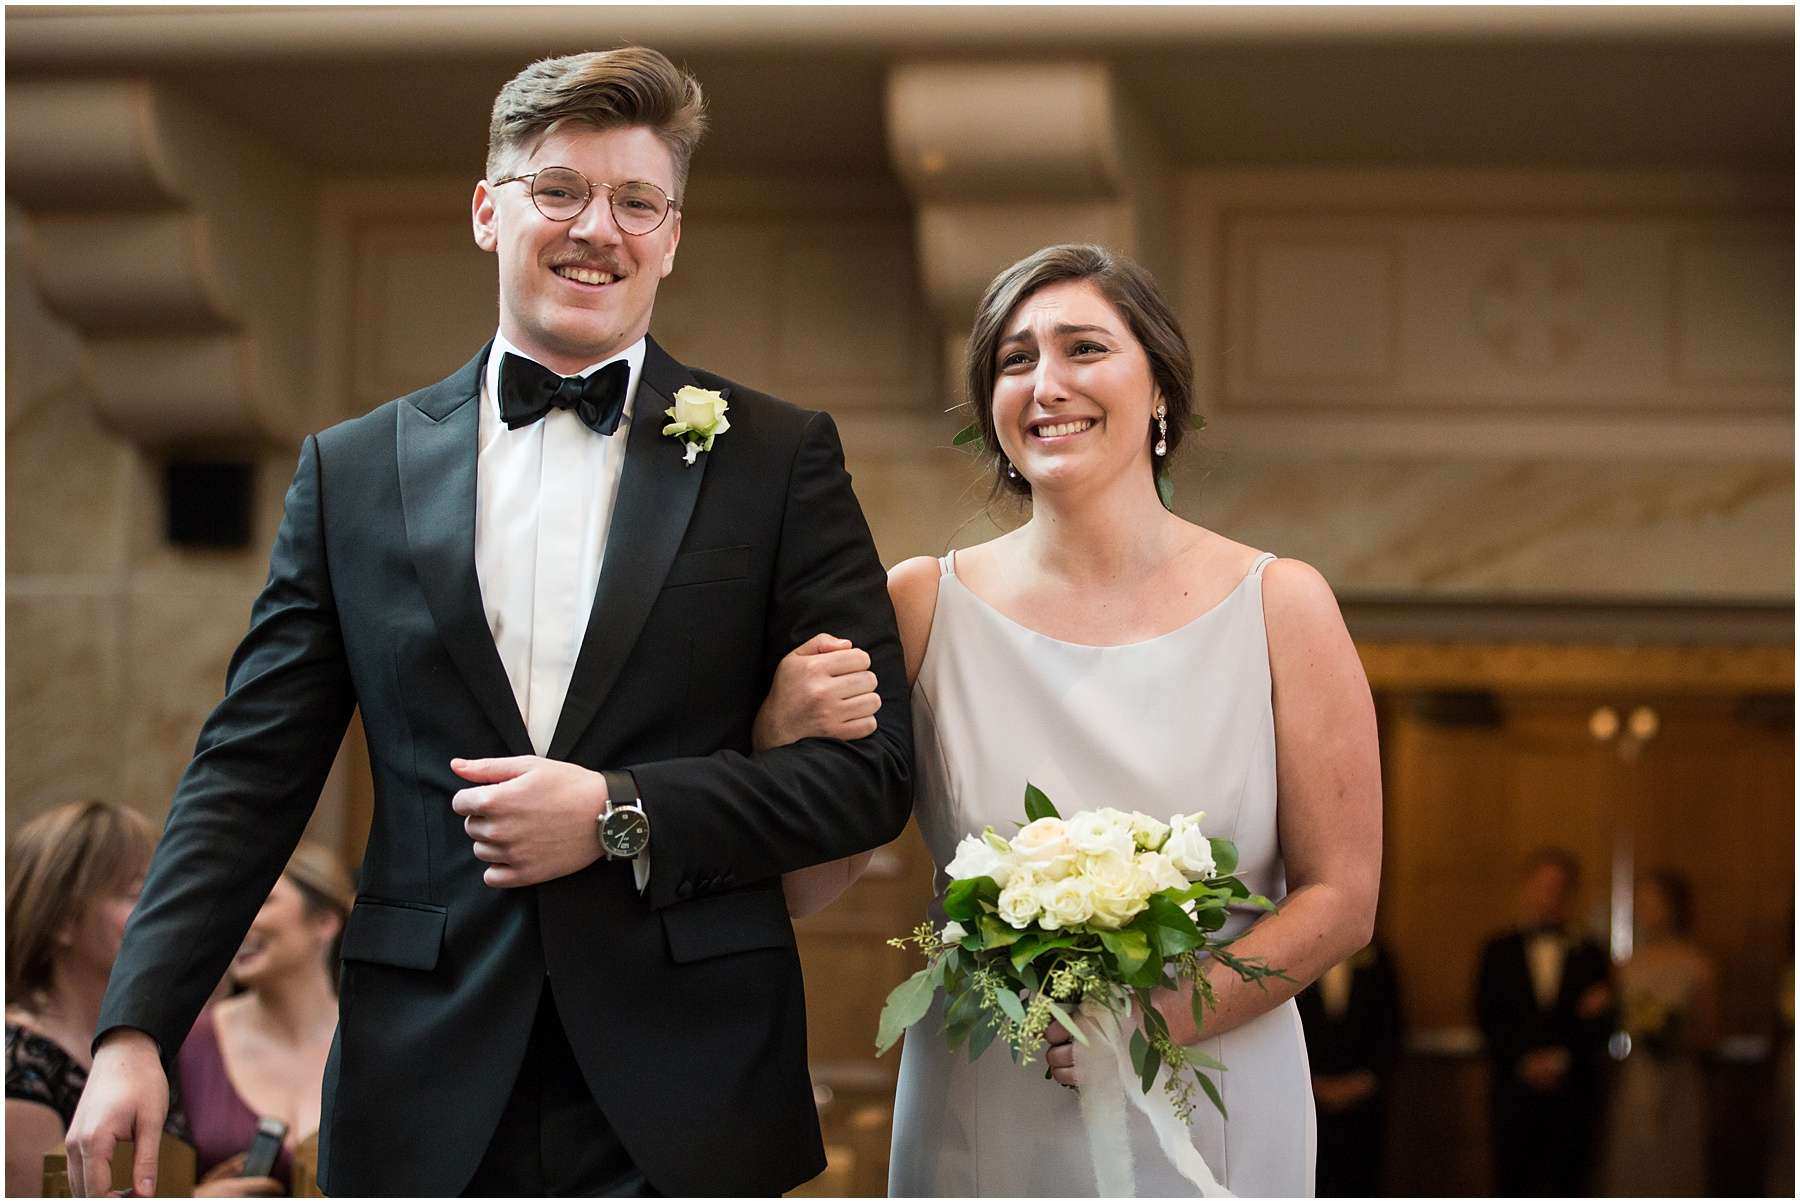 Wedding at the Ohio Statehouse | Columbus Ohio Weddings 68